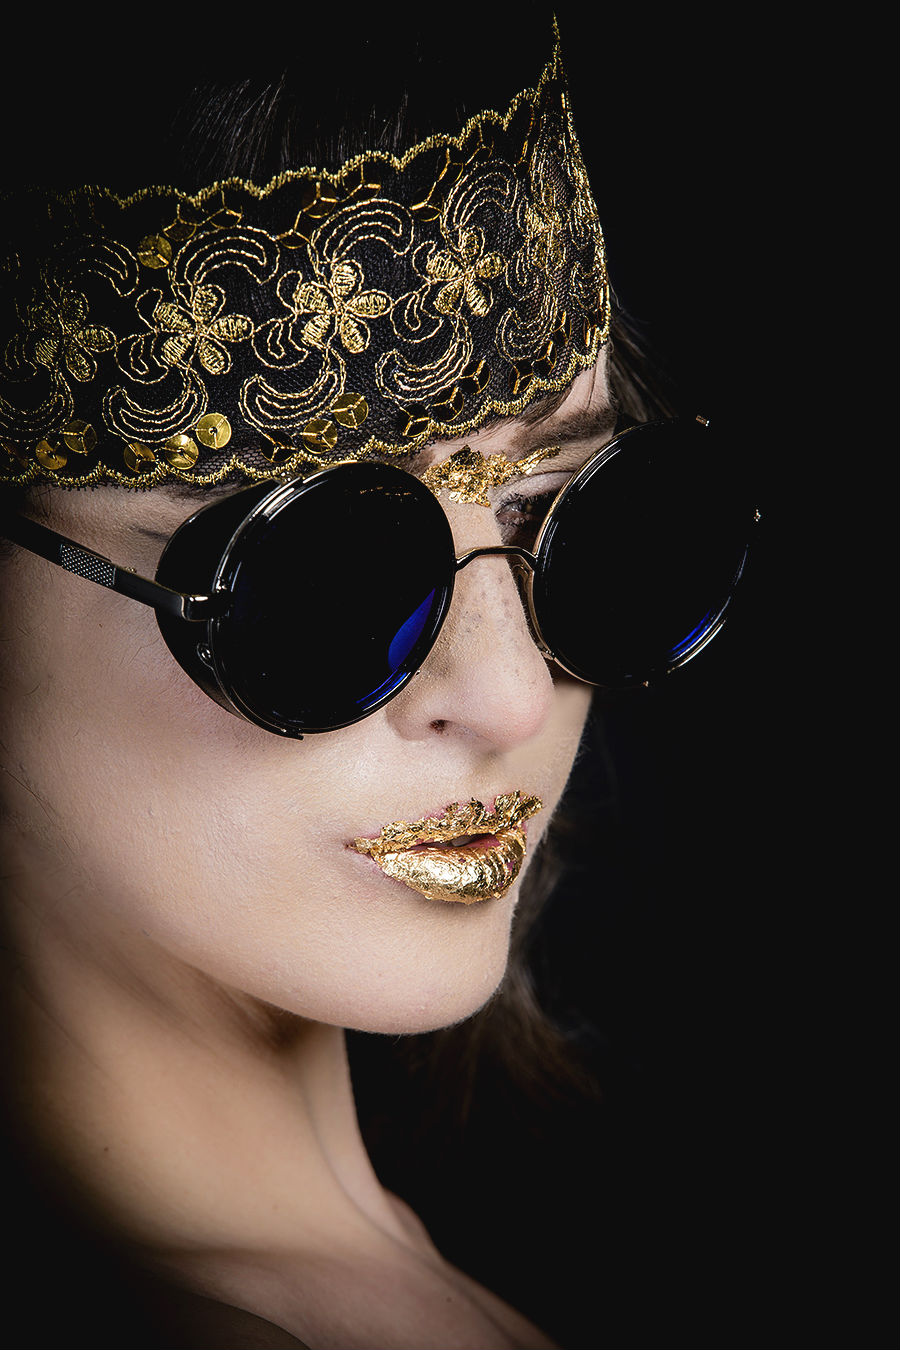 Arabian Gold / Photography by Mr T'ography, Model kateC, Taken at Barlow studios / Uploaded 27th July 2015 @ 09:32 PM